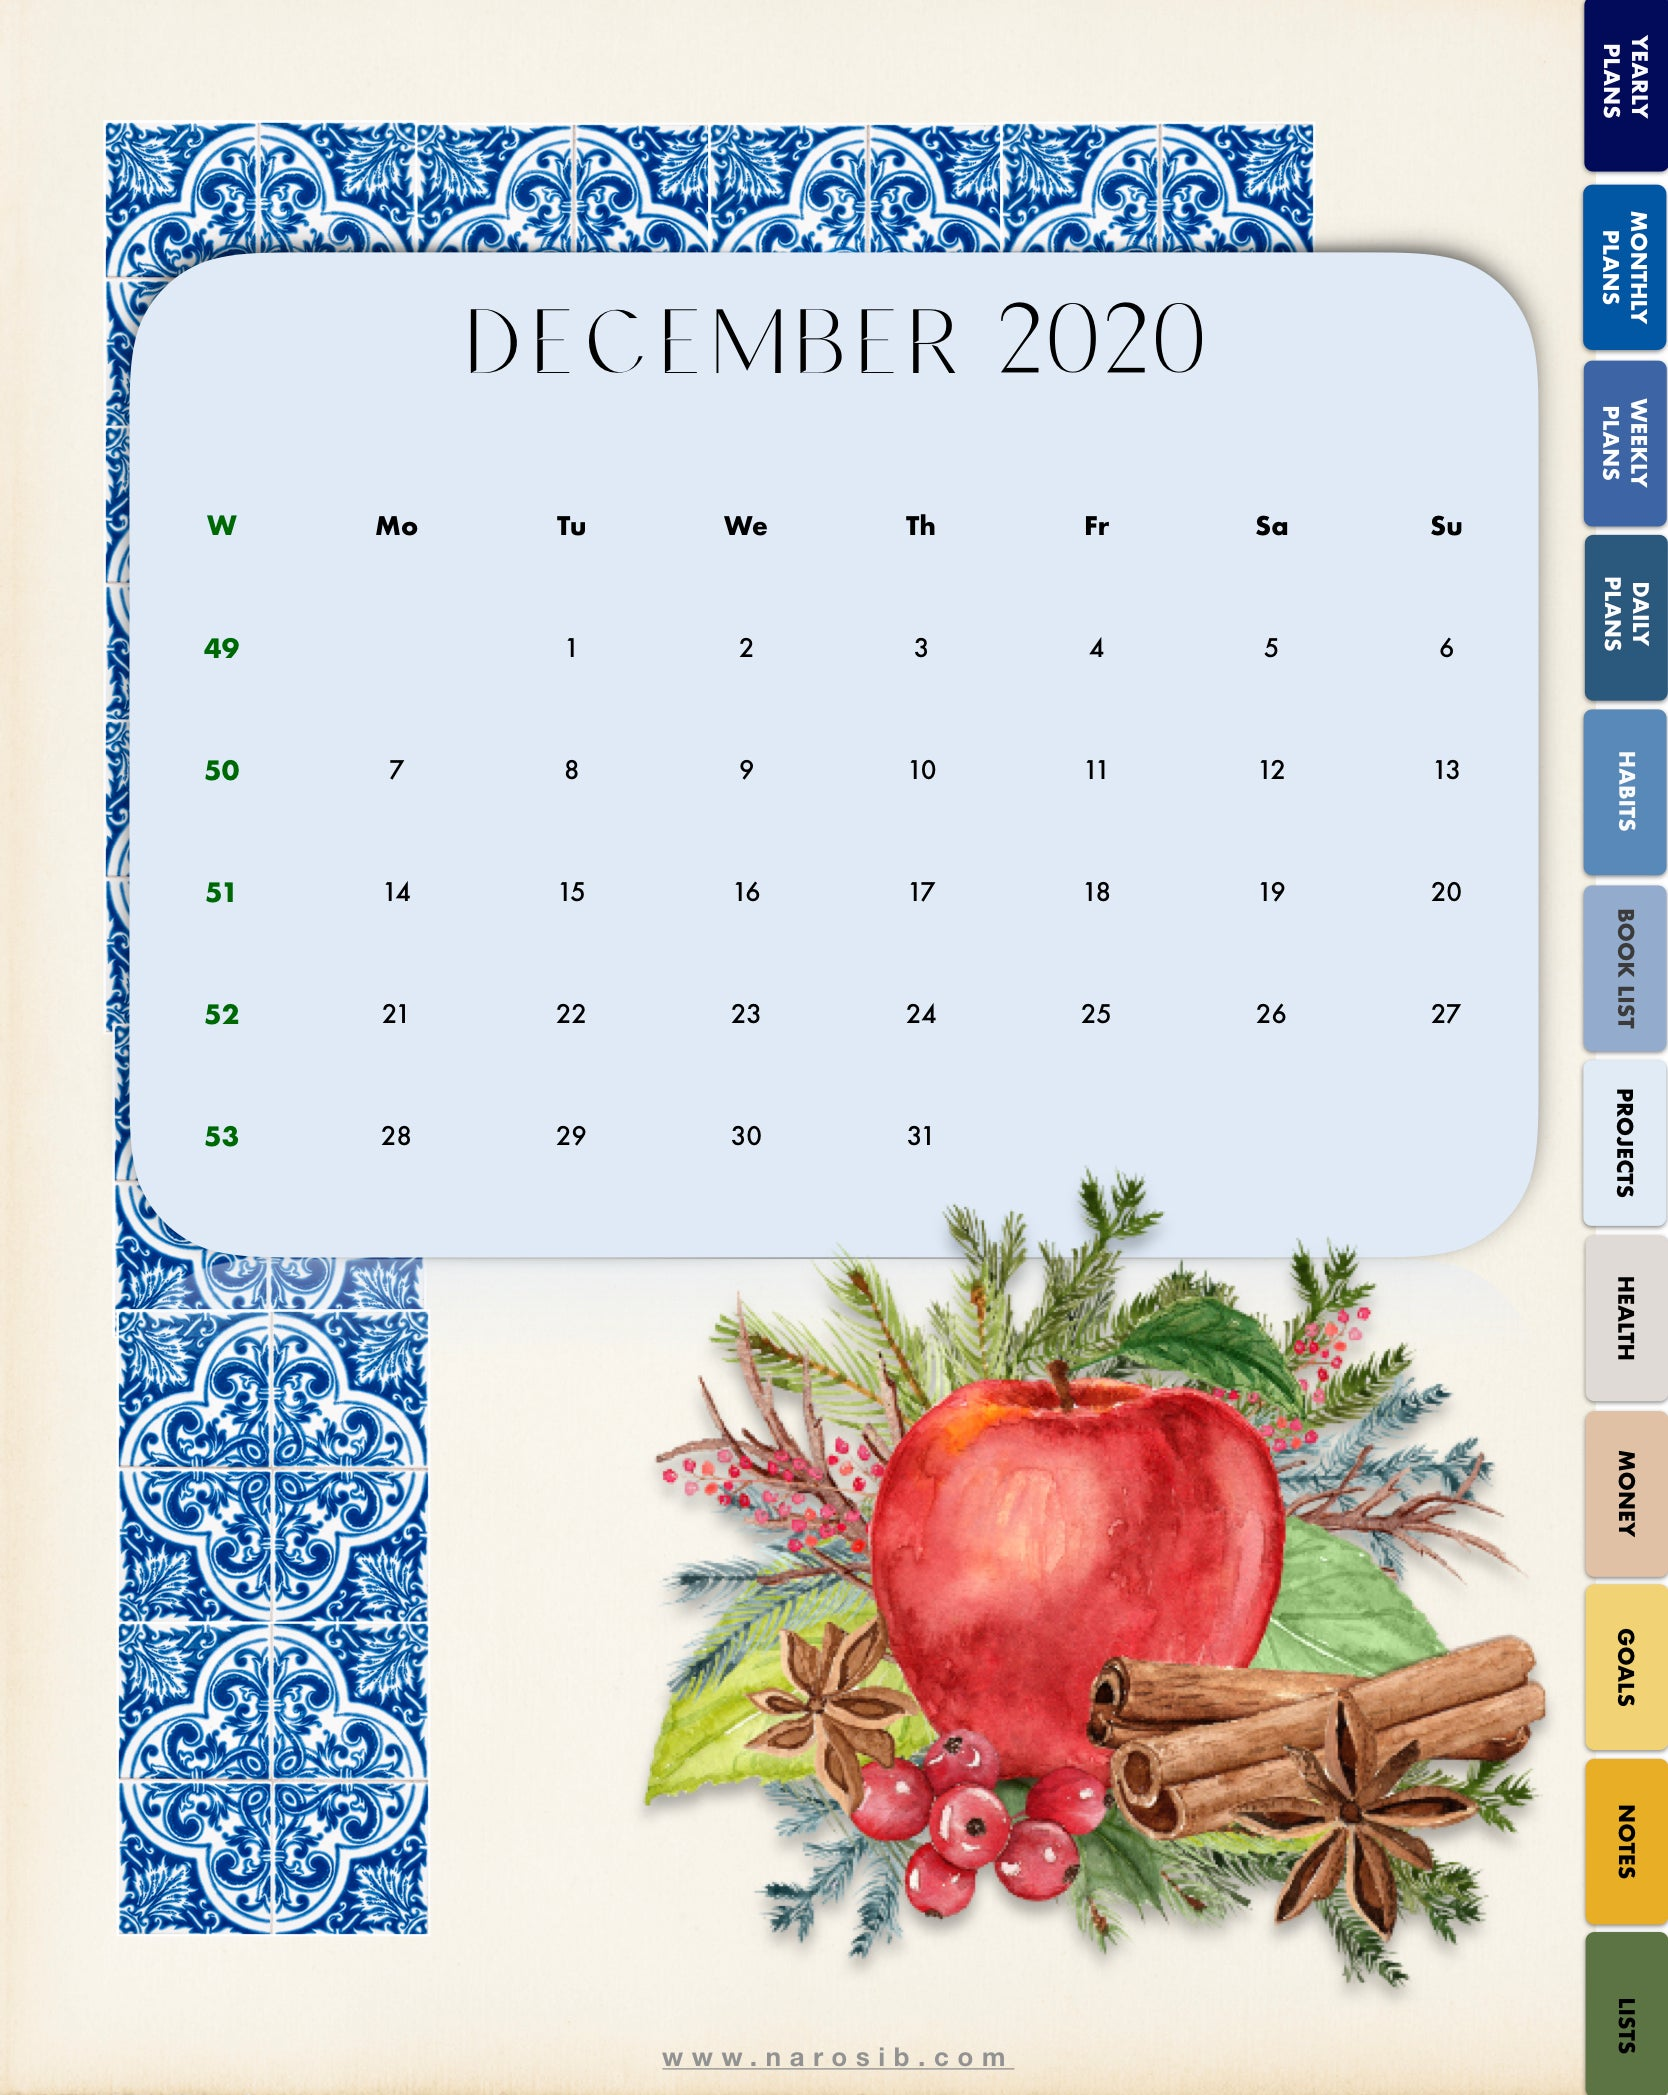 Escape to Sicily 2021 Digital Planner-Fully Hyperlinked-for Goodnotes,Notability + FREE STICKERS